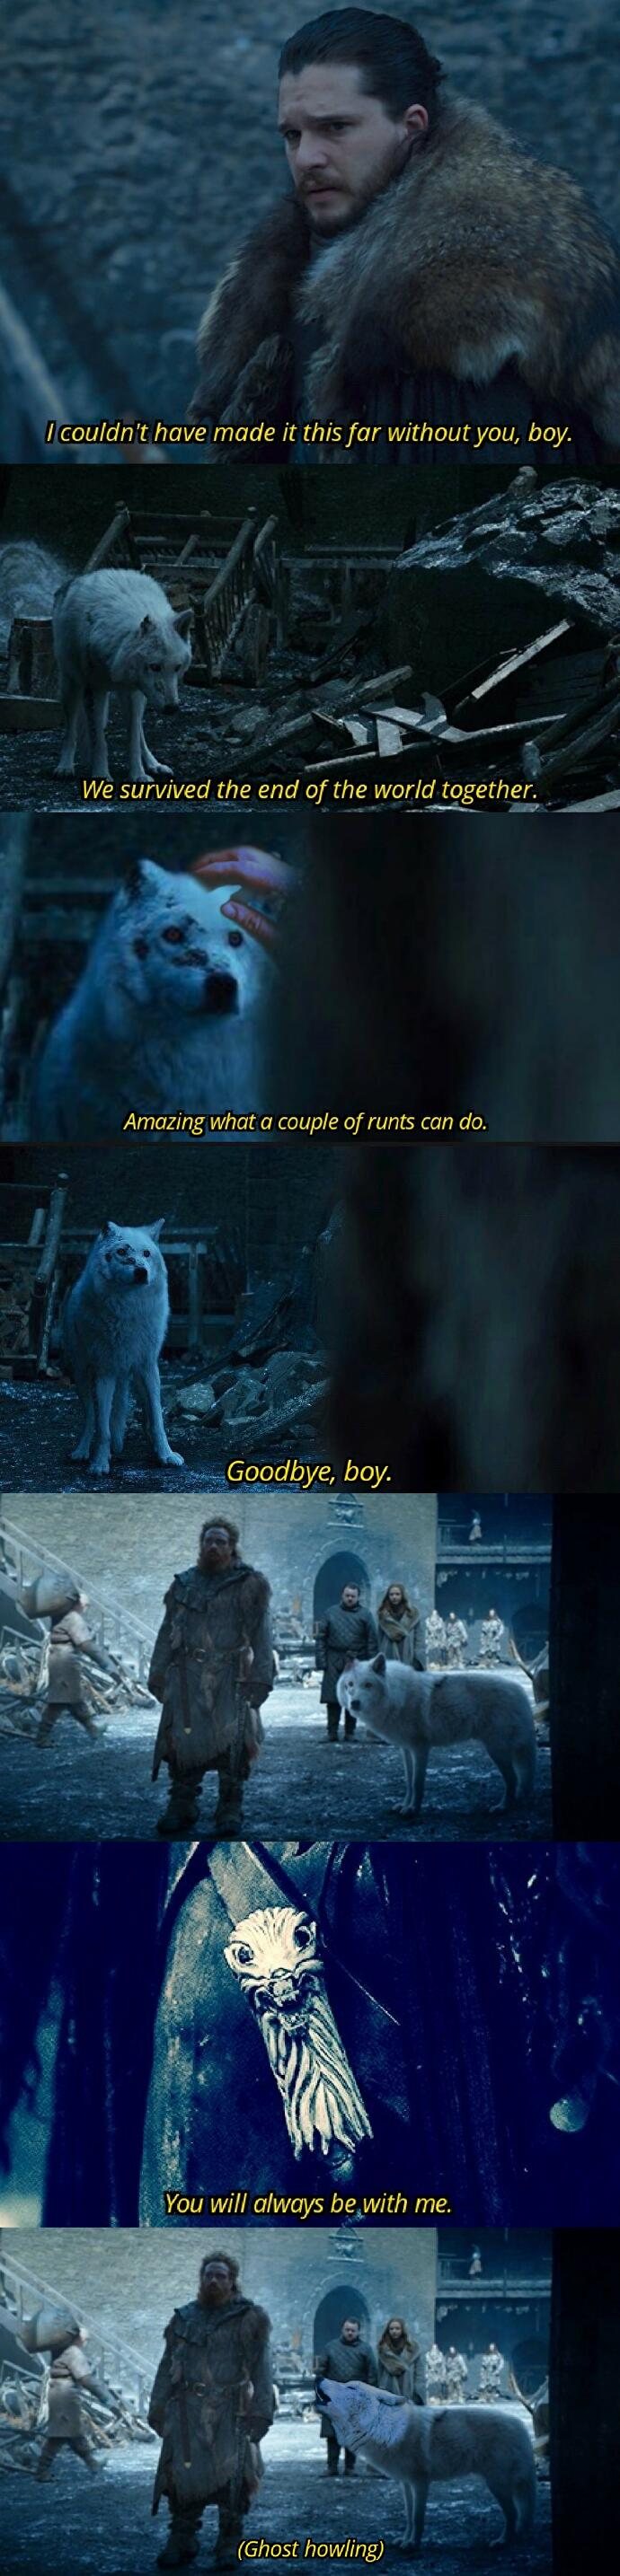 game_of_thrones_ghost